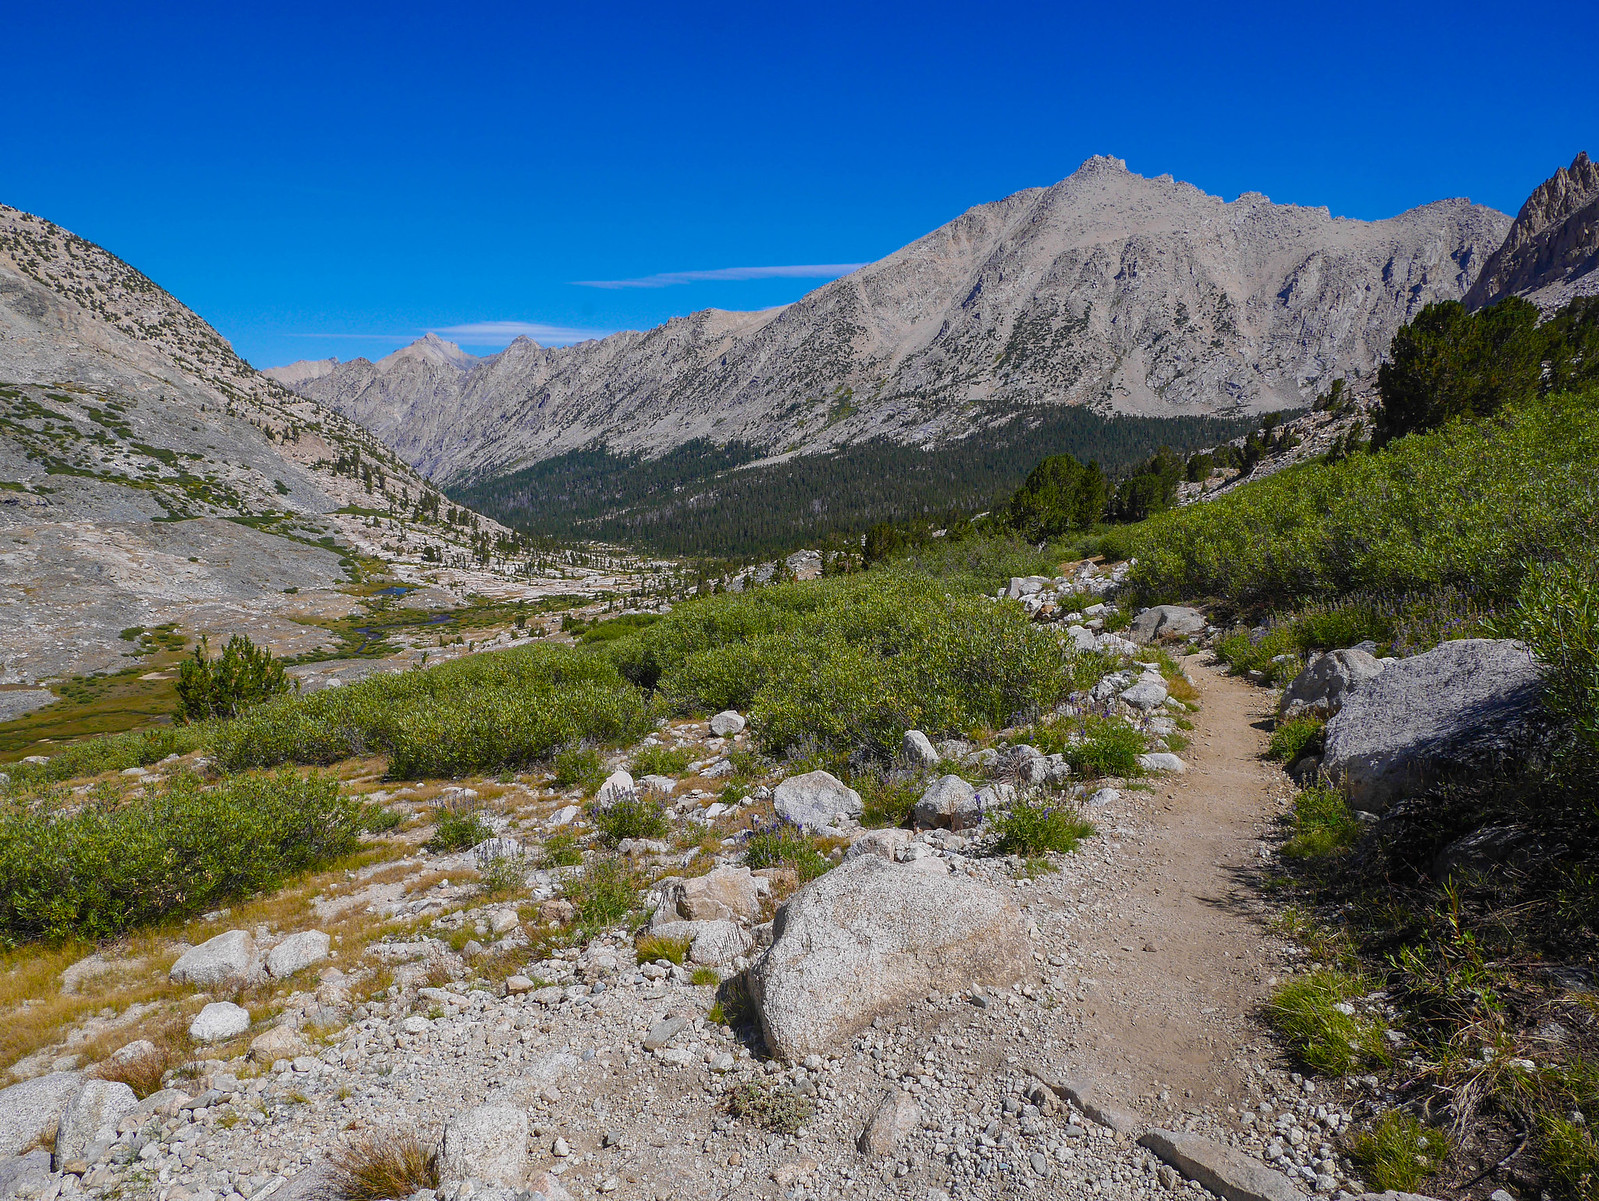 Heading down into Vidette Canyon